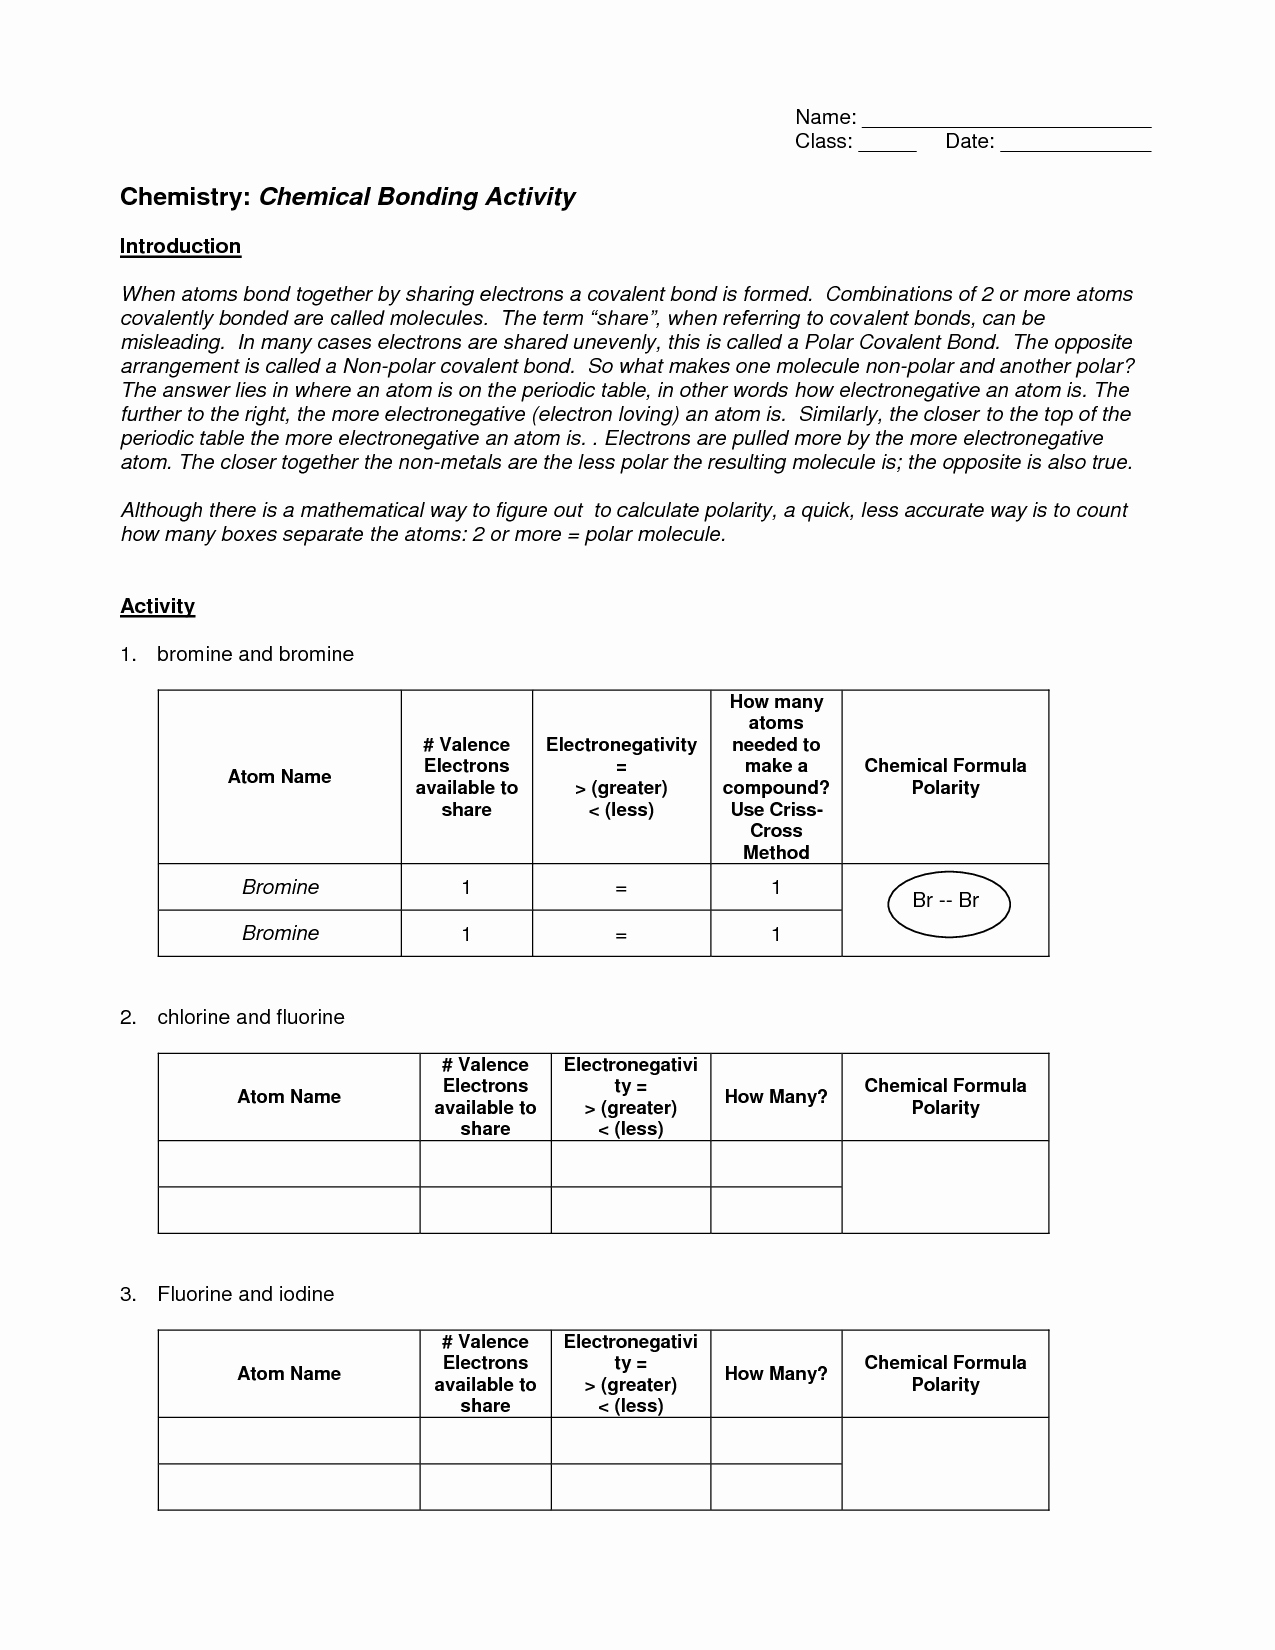 Chemical Bonds Ionic Bonds Worksheet Lovely 11 Best Of Bonding Basics Ionic Bonds Worksheet